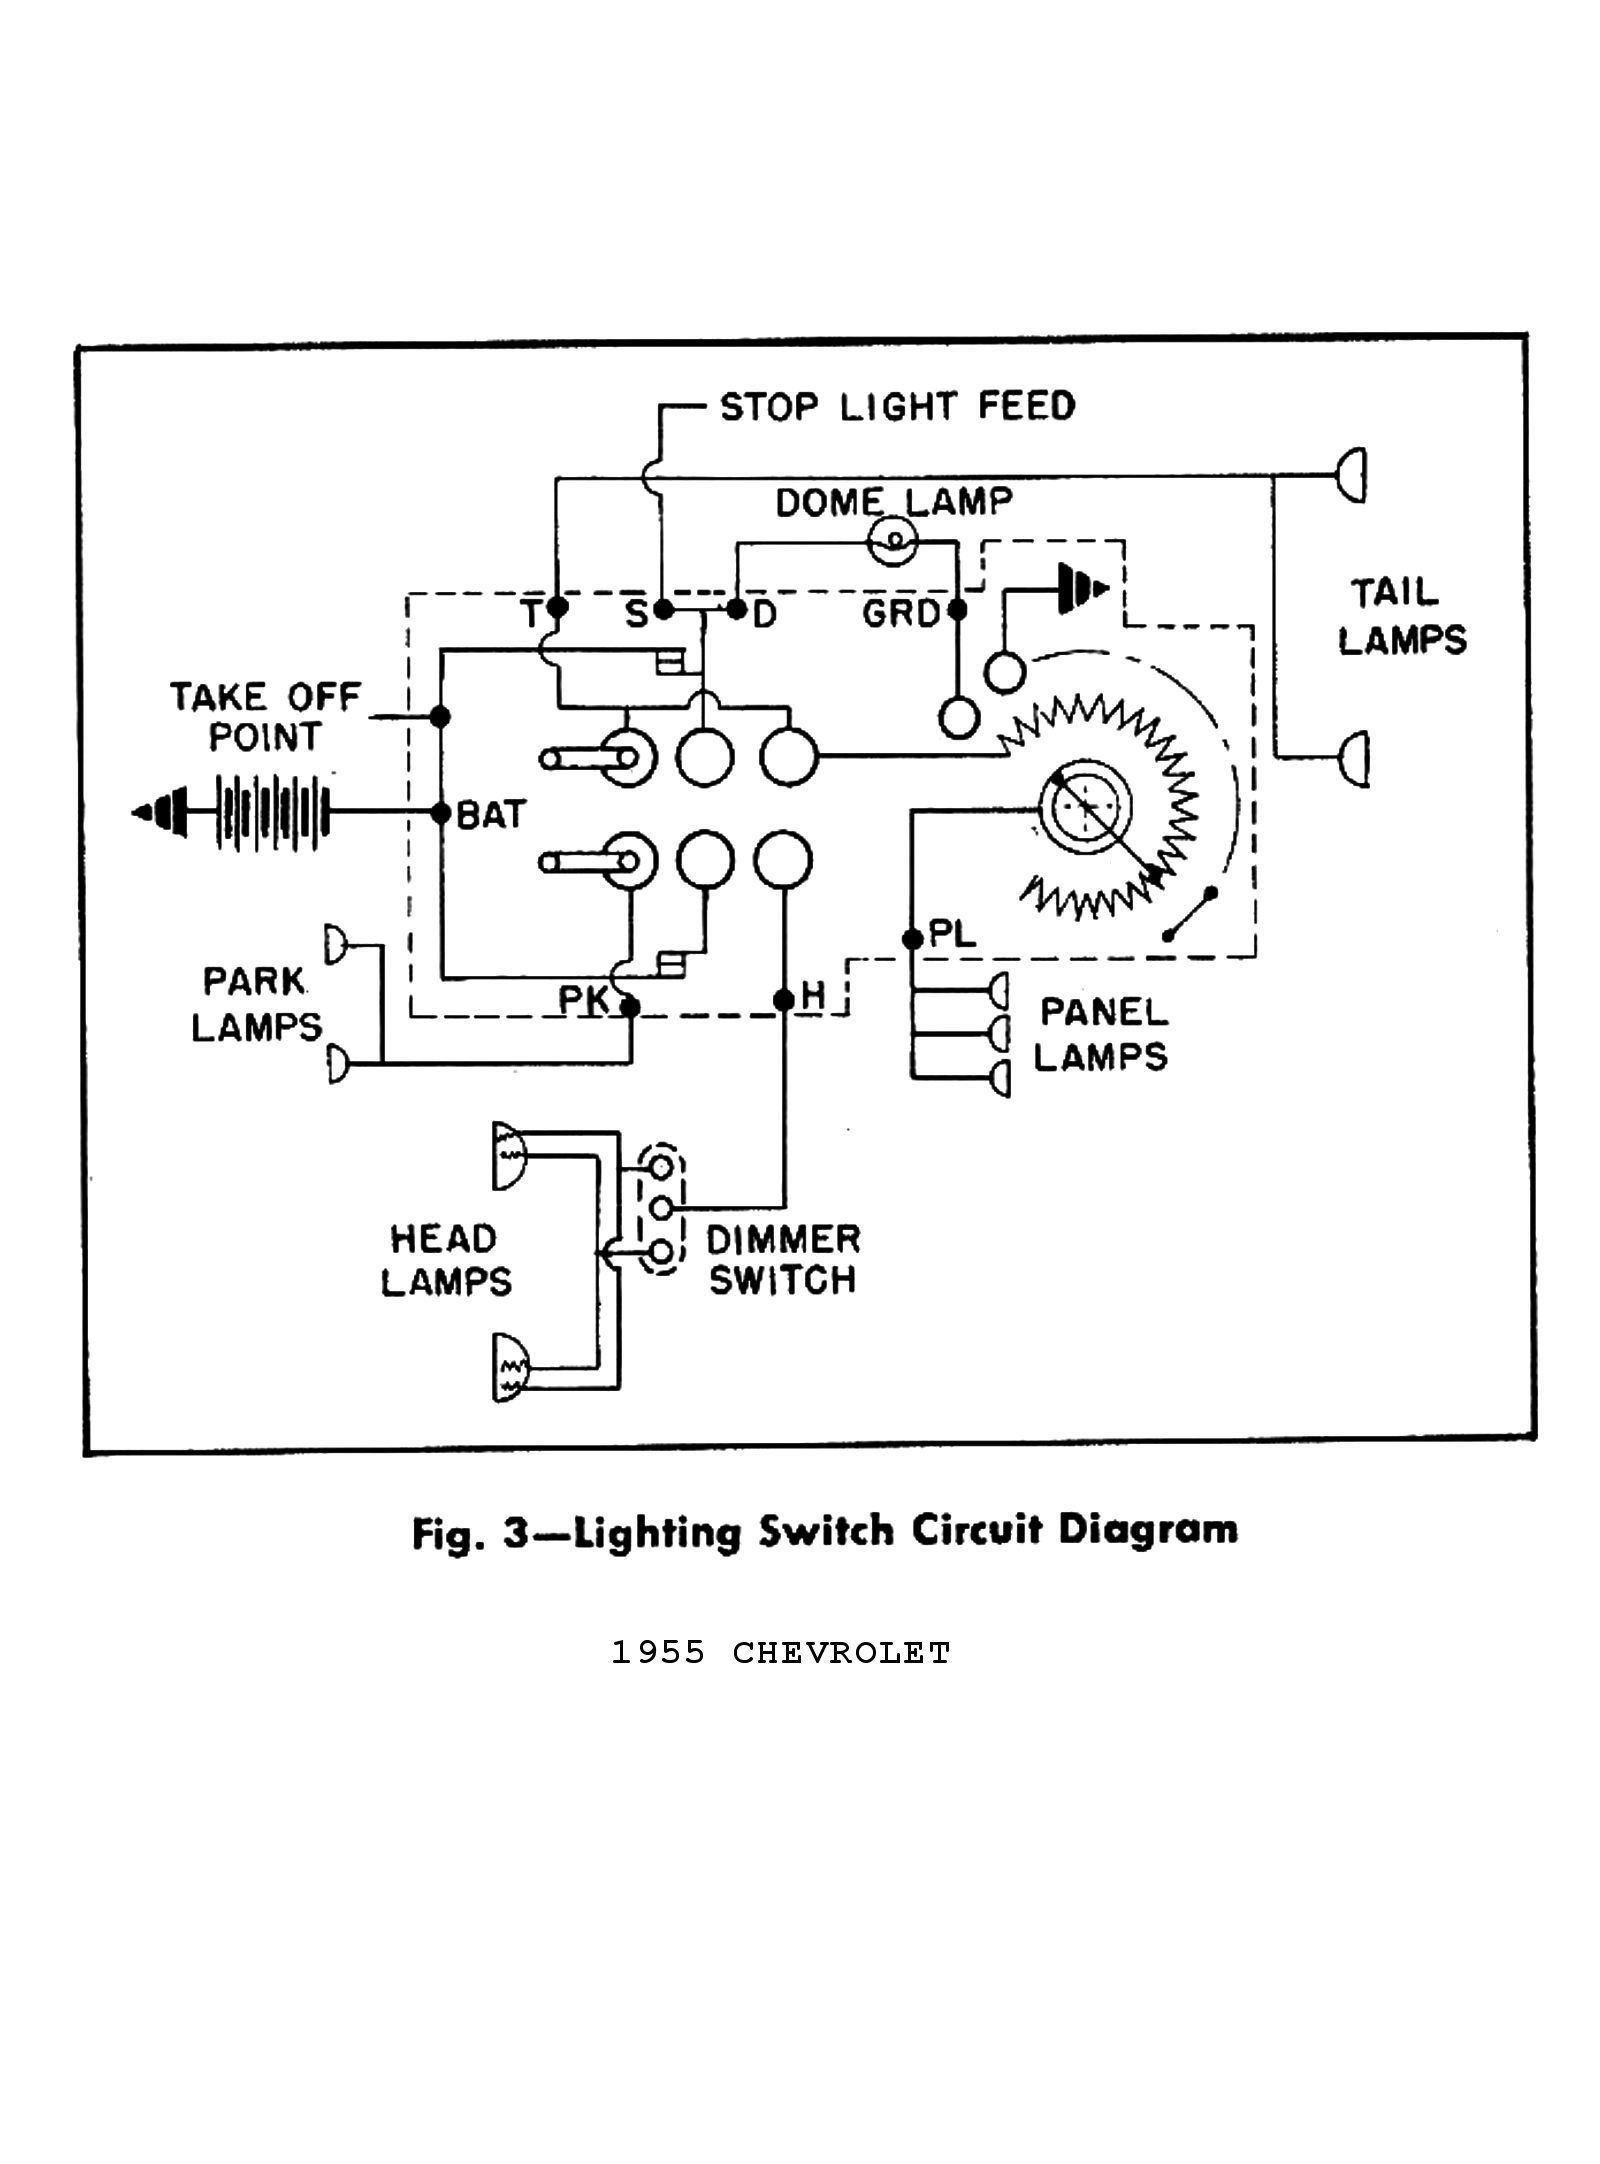 64 corvette headlight switch wiring diagram wiring diagram schematicschevy truck headlight switch wiring diagram wiring diagram [ 1600 x 2164 Pixel ]